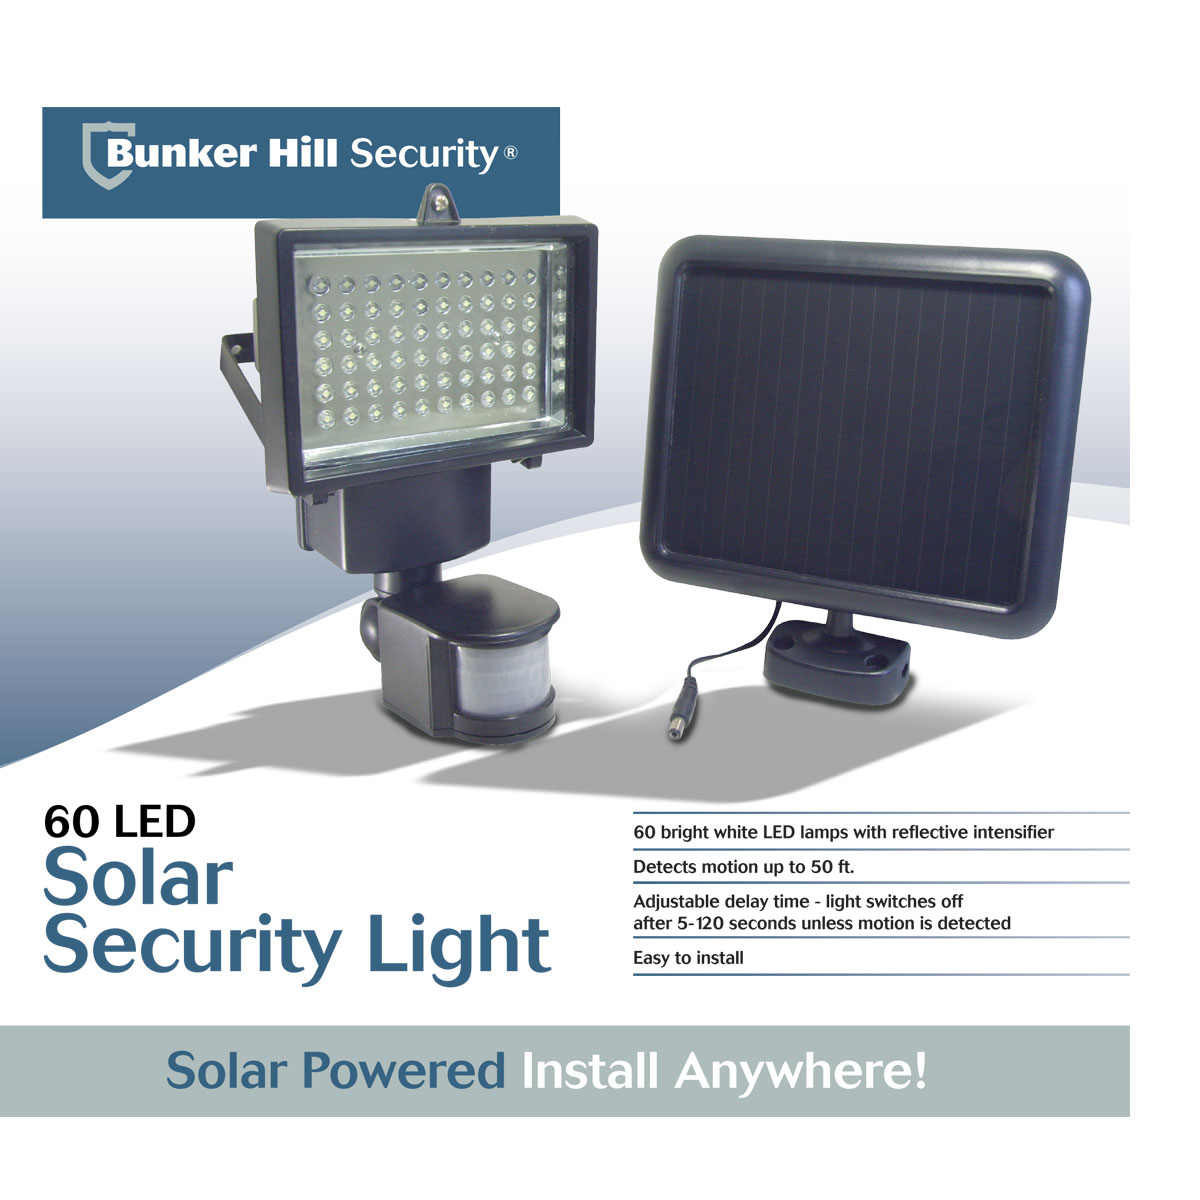 Outdoor Security Lighting 60 led solar security light workwithnaturefo